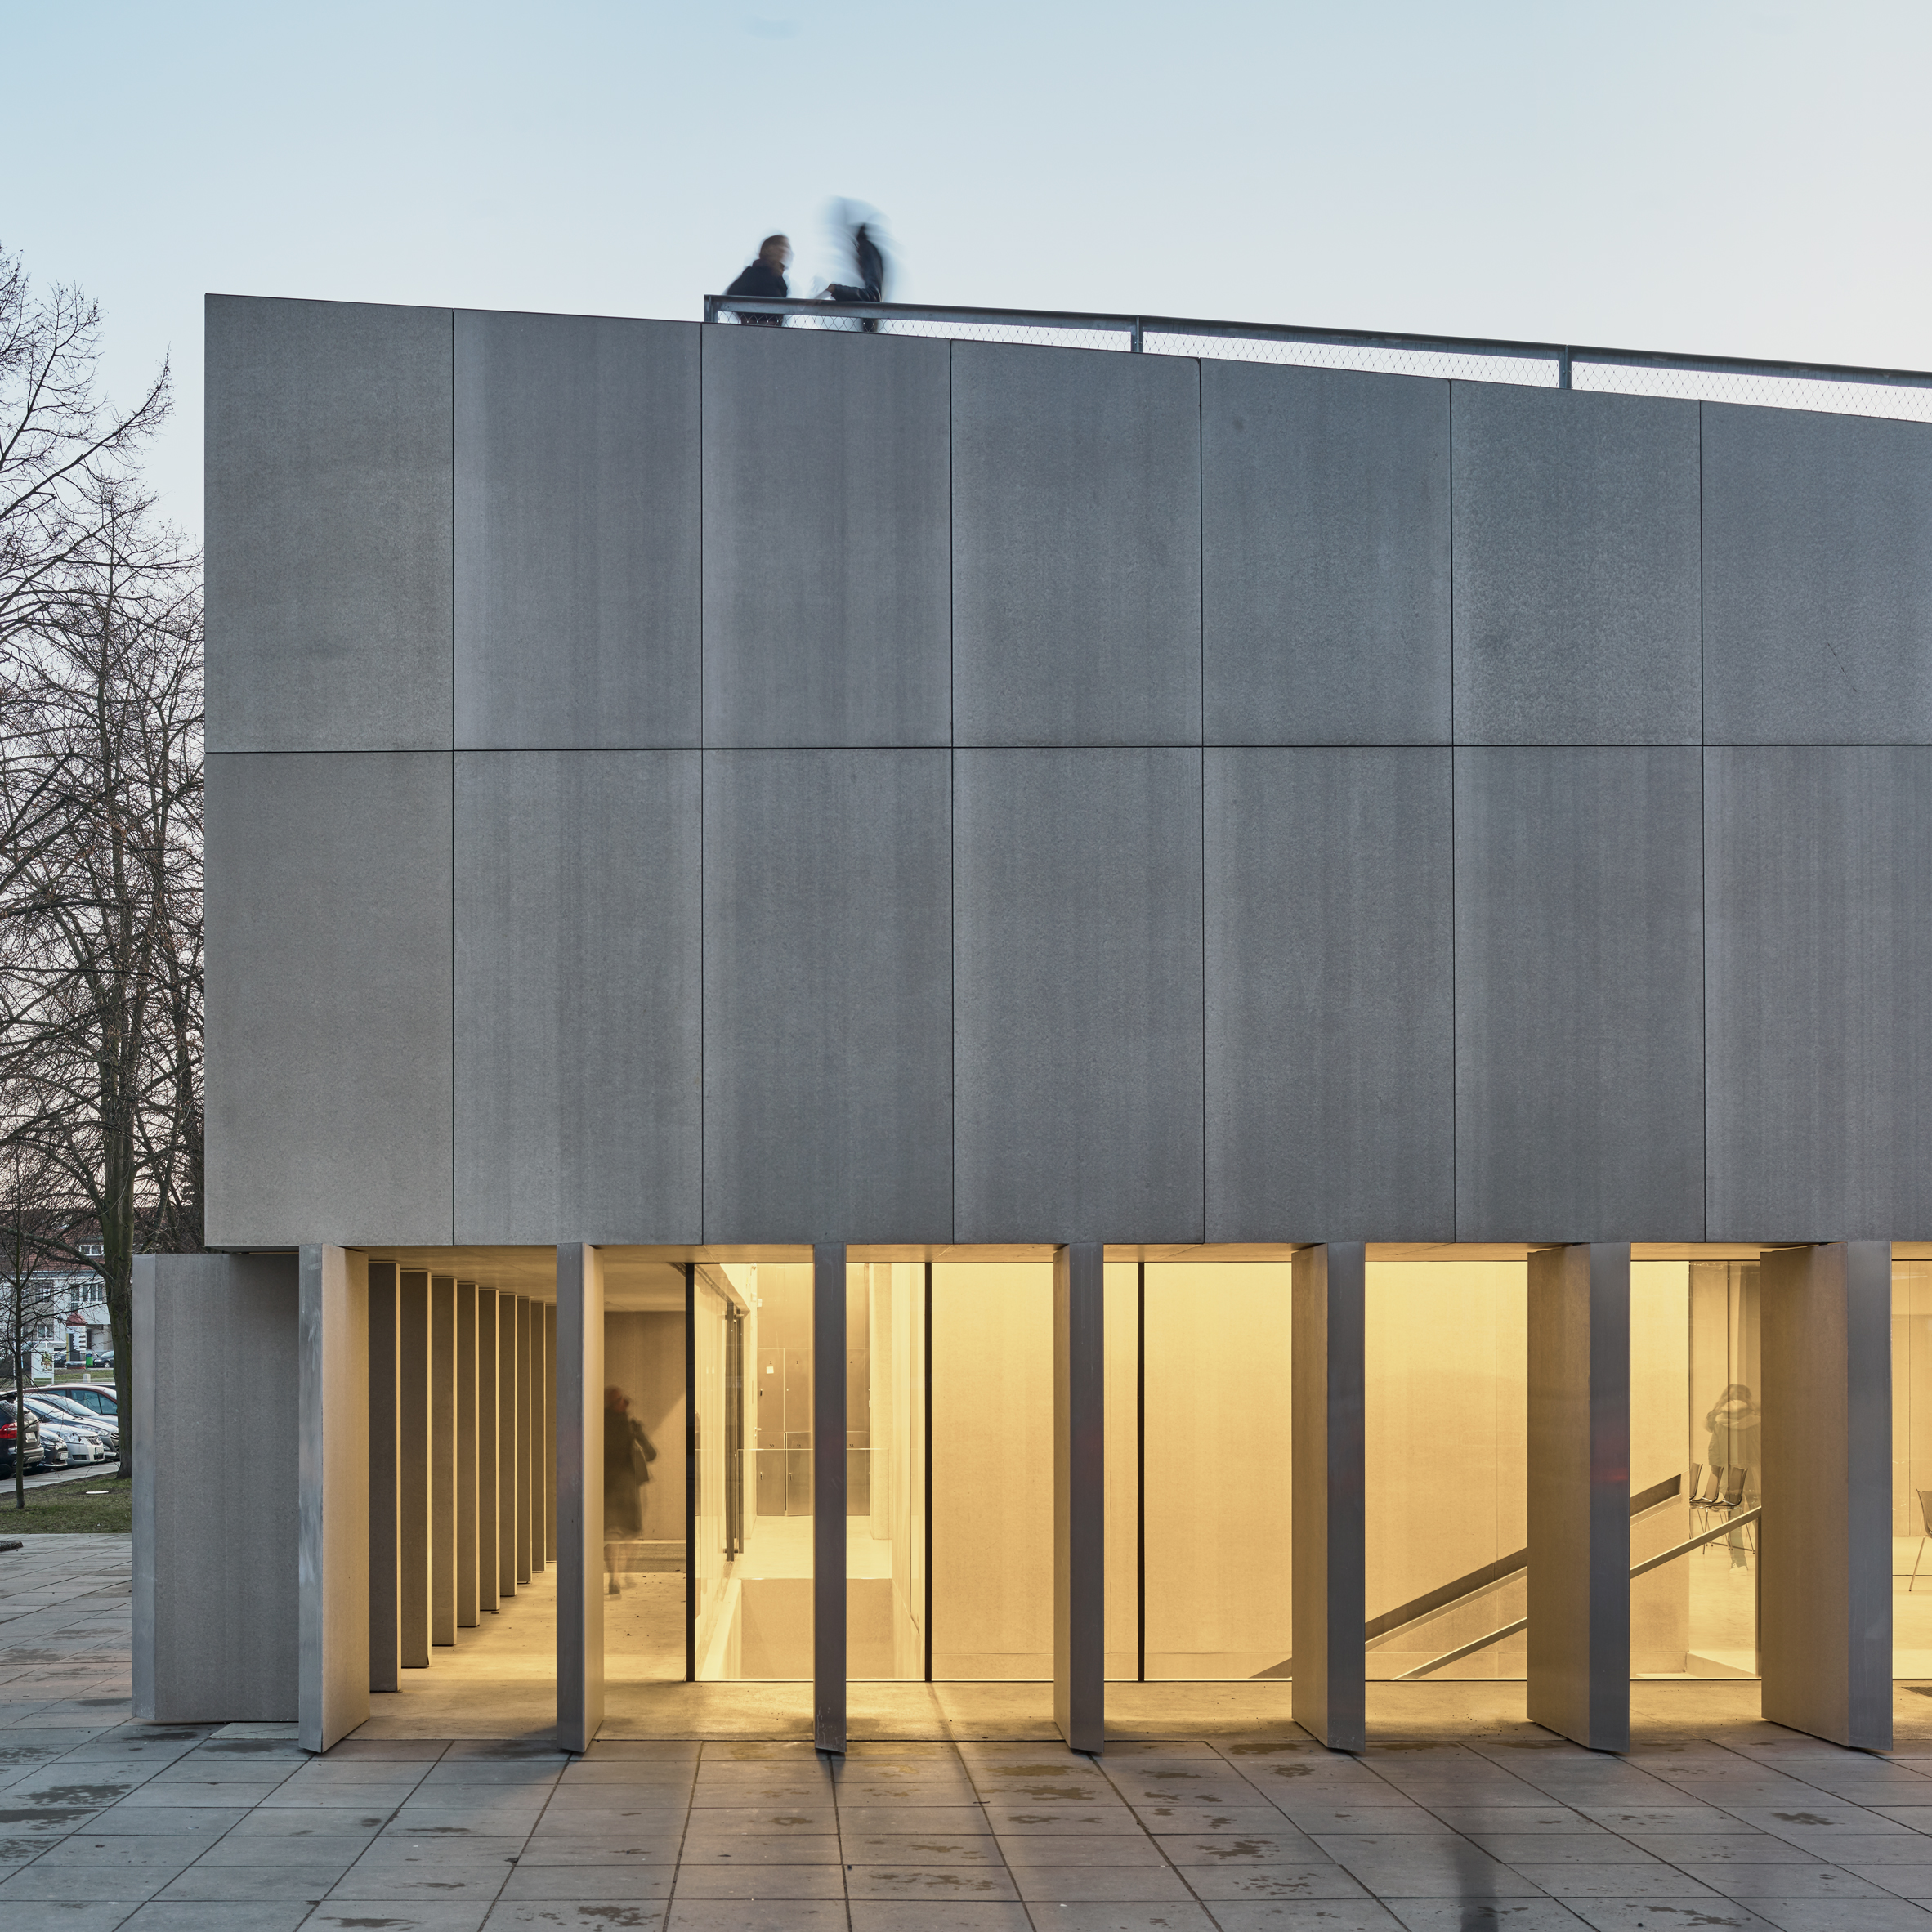 movies-building-of-the-year-national-museum-szczcin-szczecin-poland-robert-konieczny-kwk-promes-world-architecture-festival-video-interview_dezeen_2364_sq-4